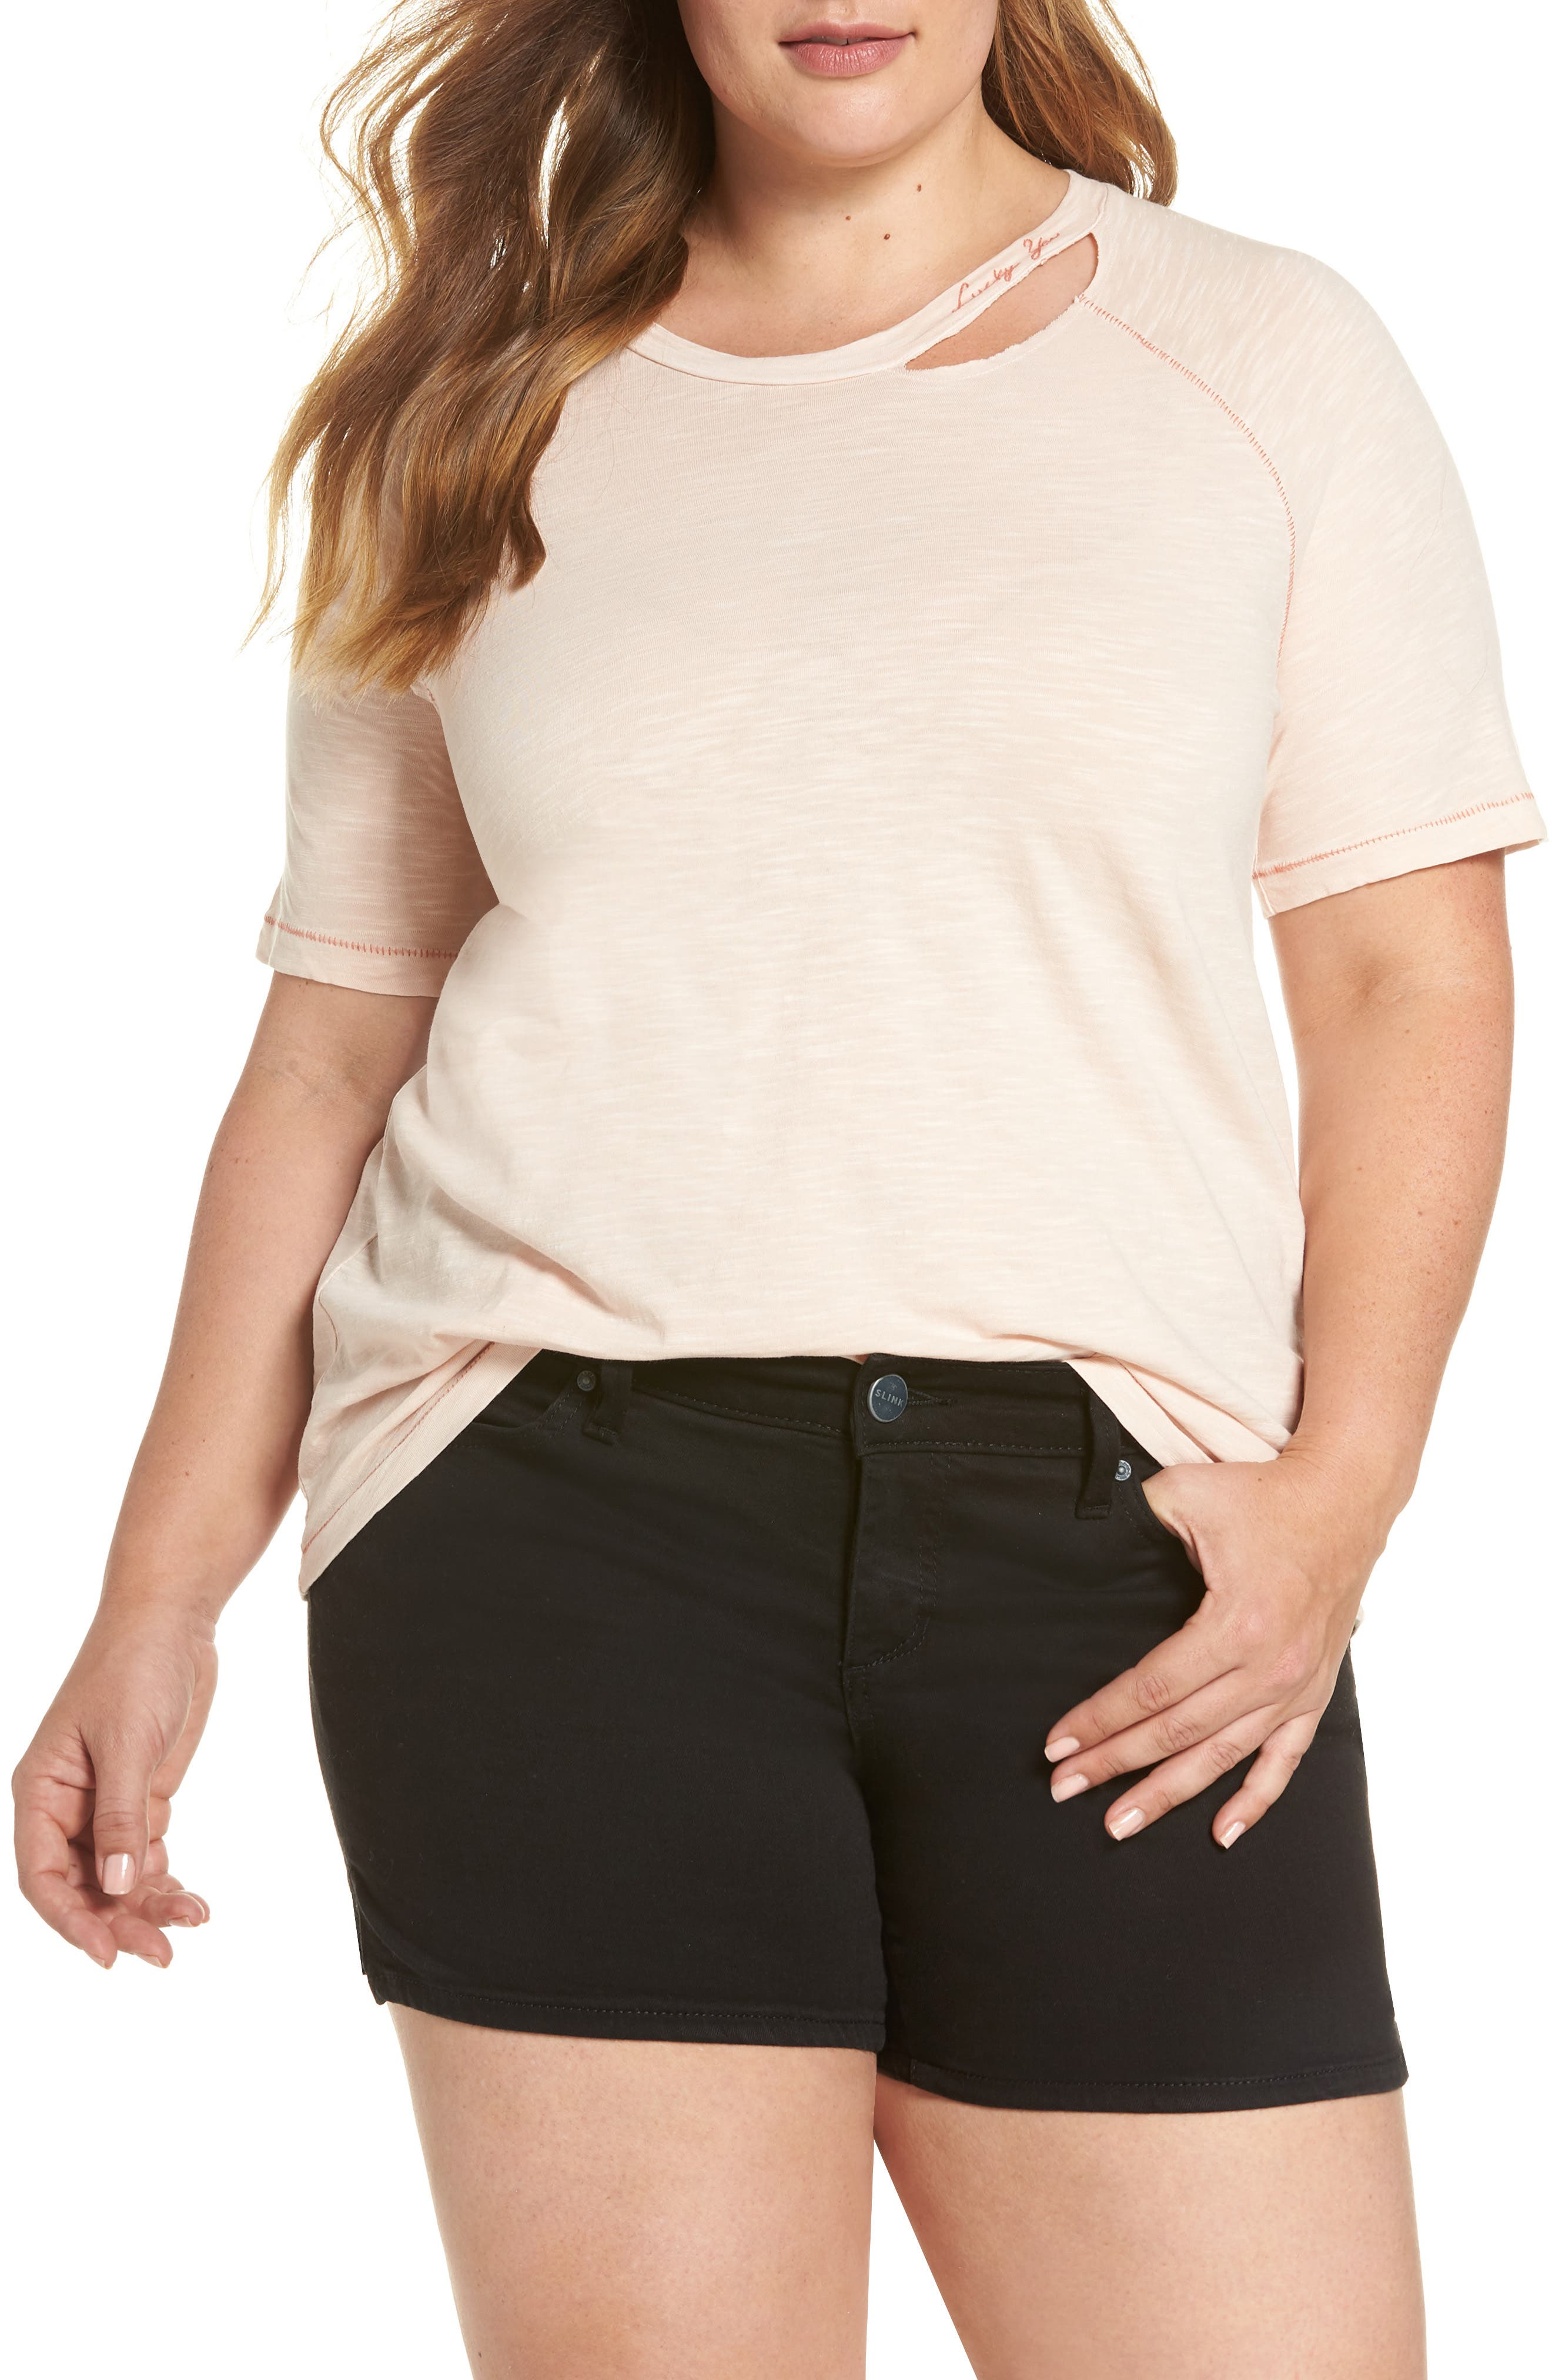 Lucky You Deconstructed Tee,                         Main,                         color, 951